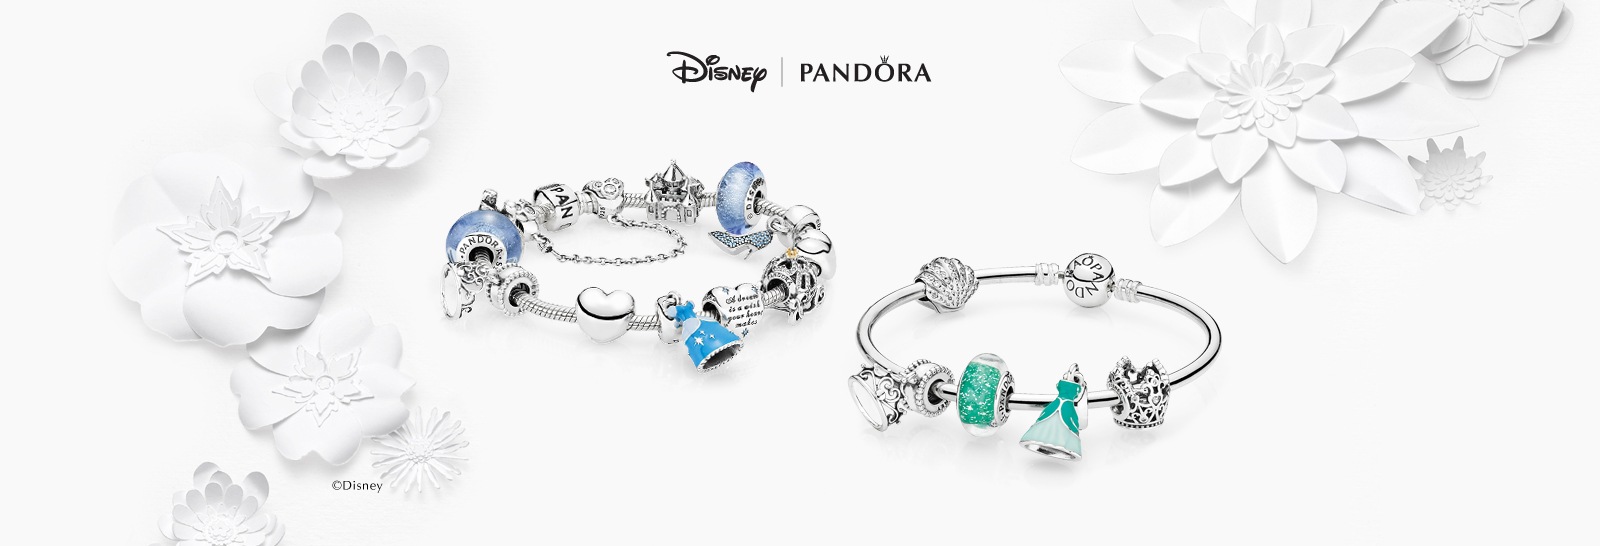 pandora disney collection europe uk middle east africa